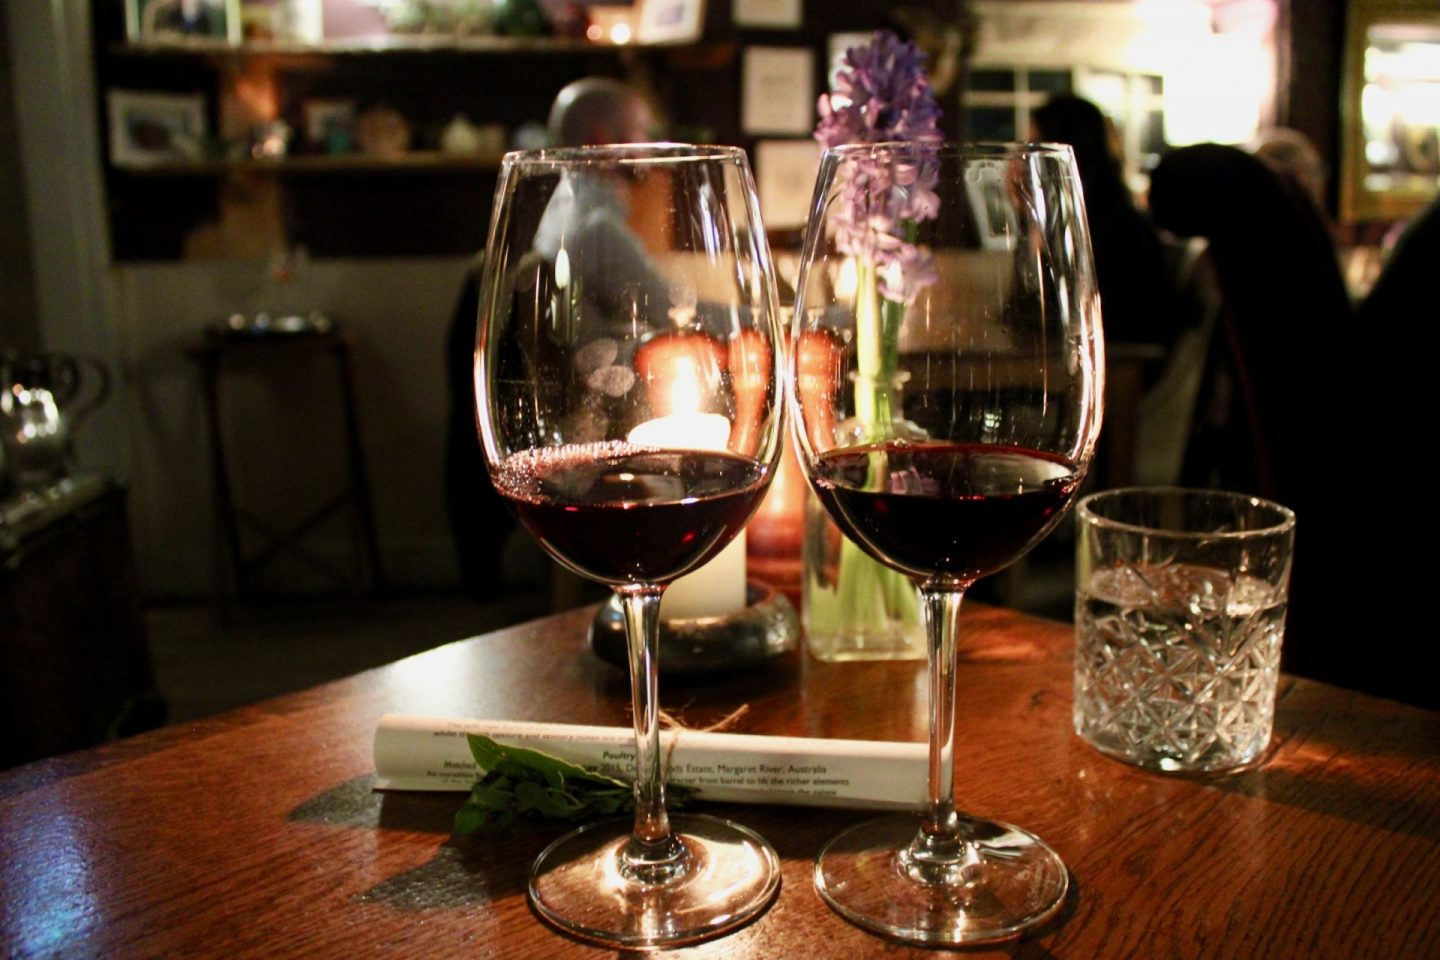 Things to do in Helmsley North Yorkshire: two glasses of red wine on a wooden table, taken at The Star Inn Harome